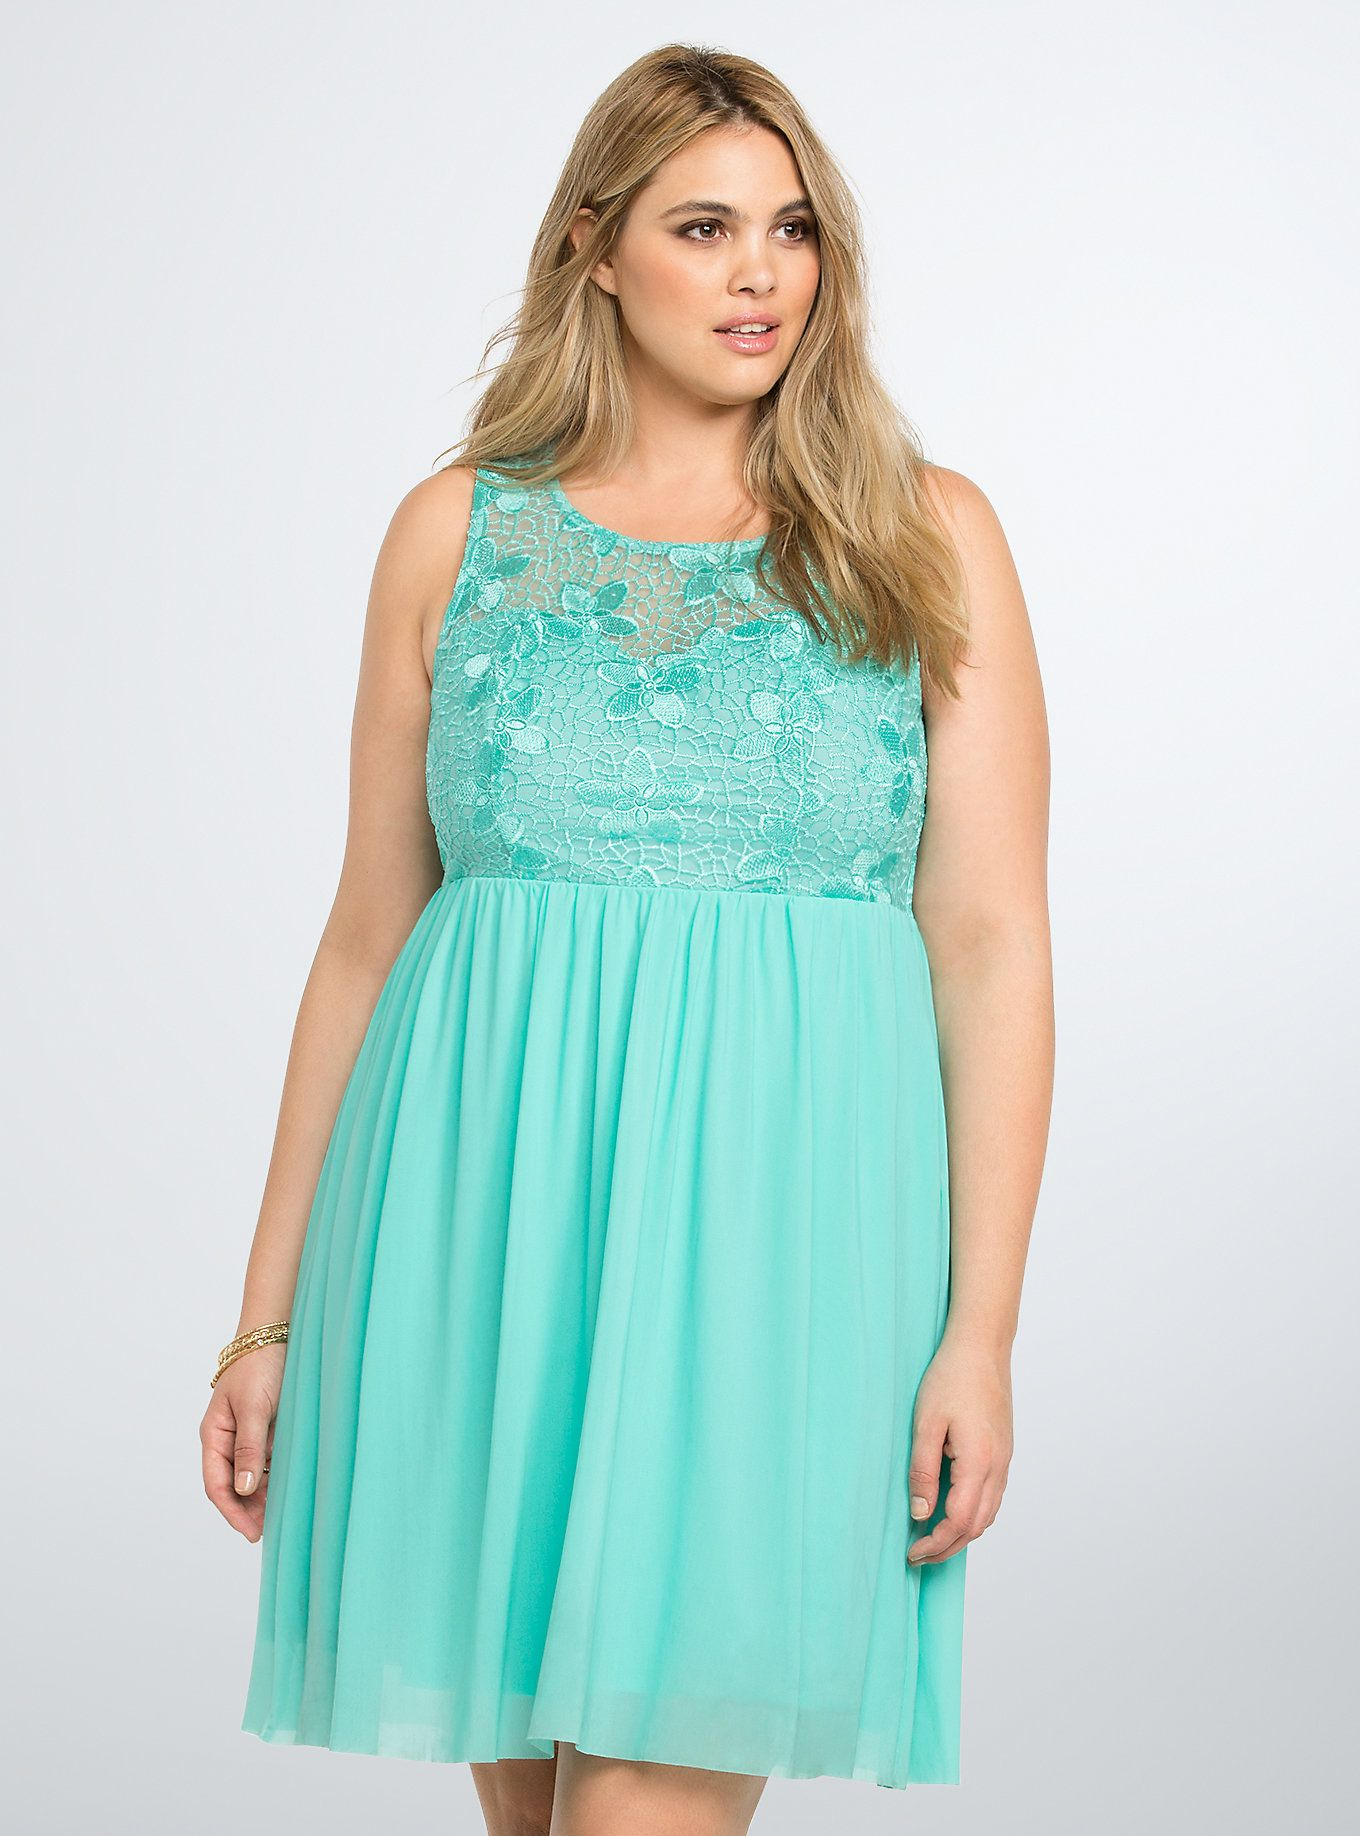 Lace & Mesh Skater Dress Need a go-to cocktail dress? We got you ...